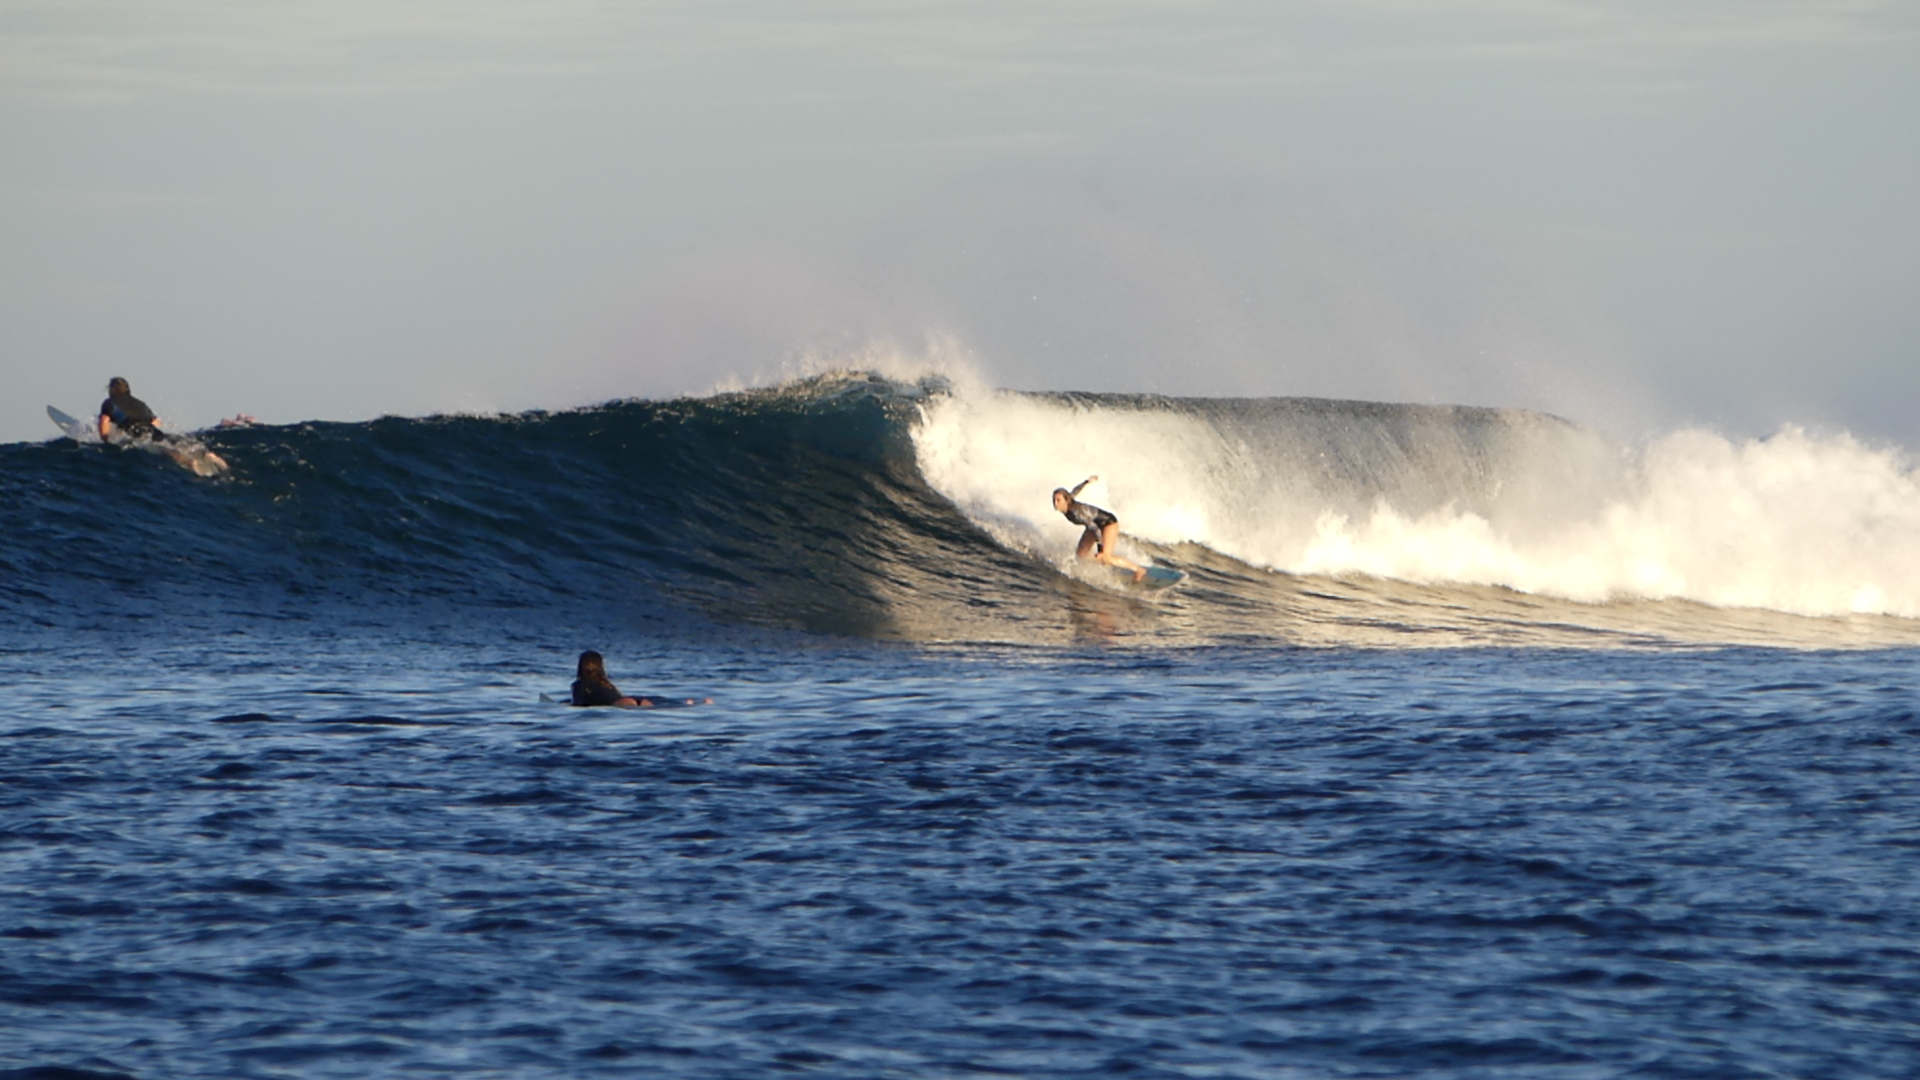 Leonor working on a variety of bottom turns